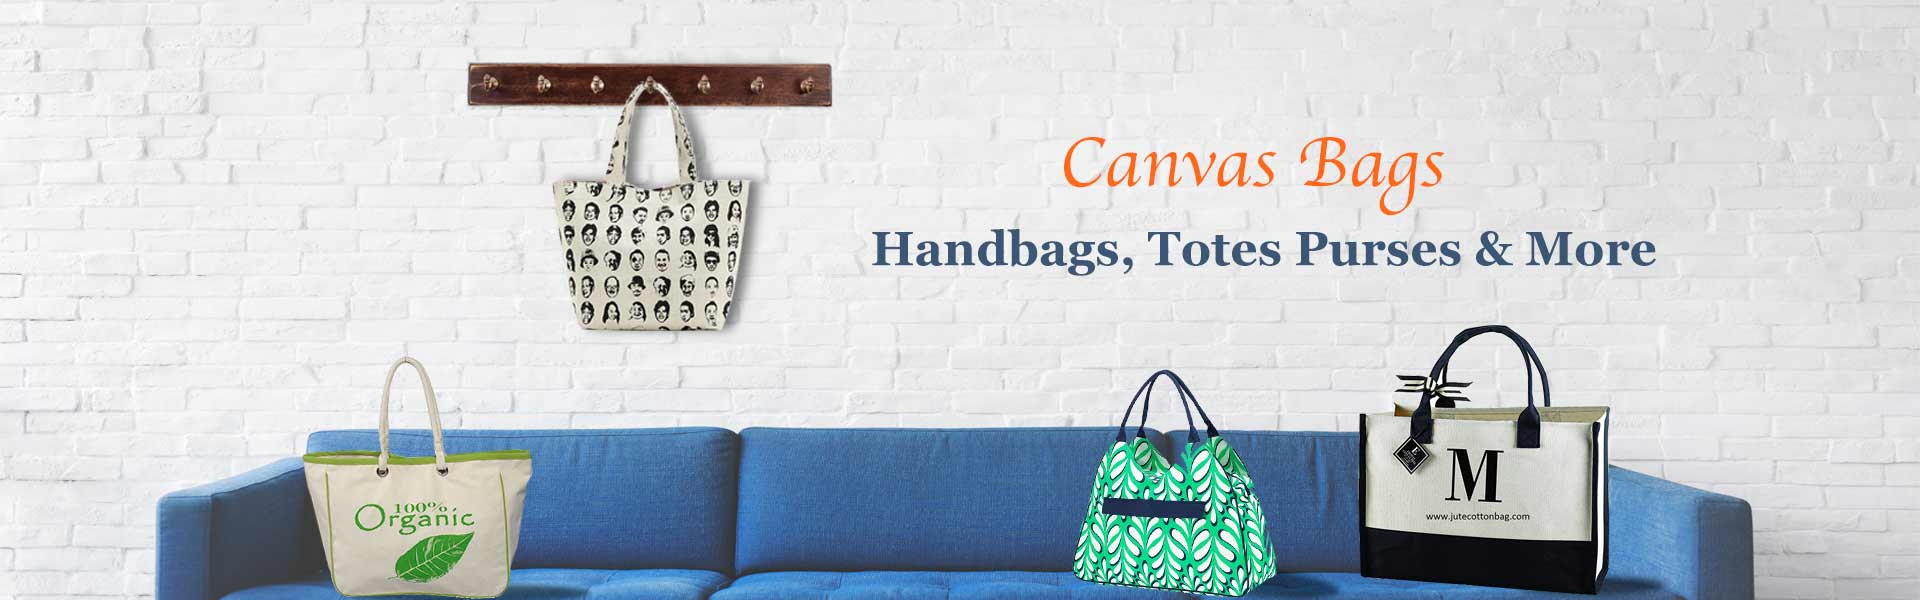 Wholesale Canvas Bags Supplier in Belgium